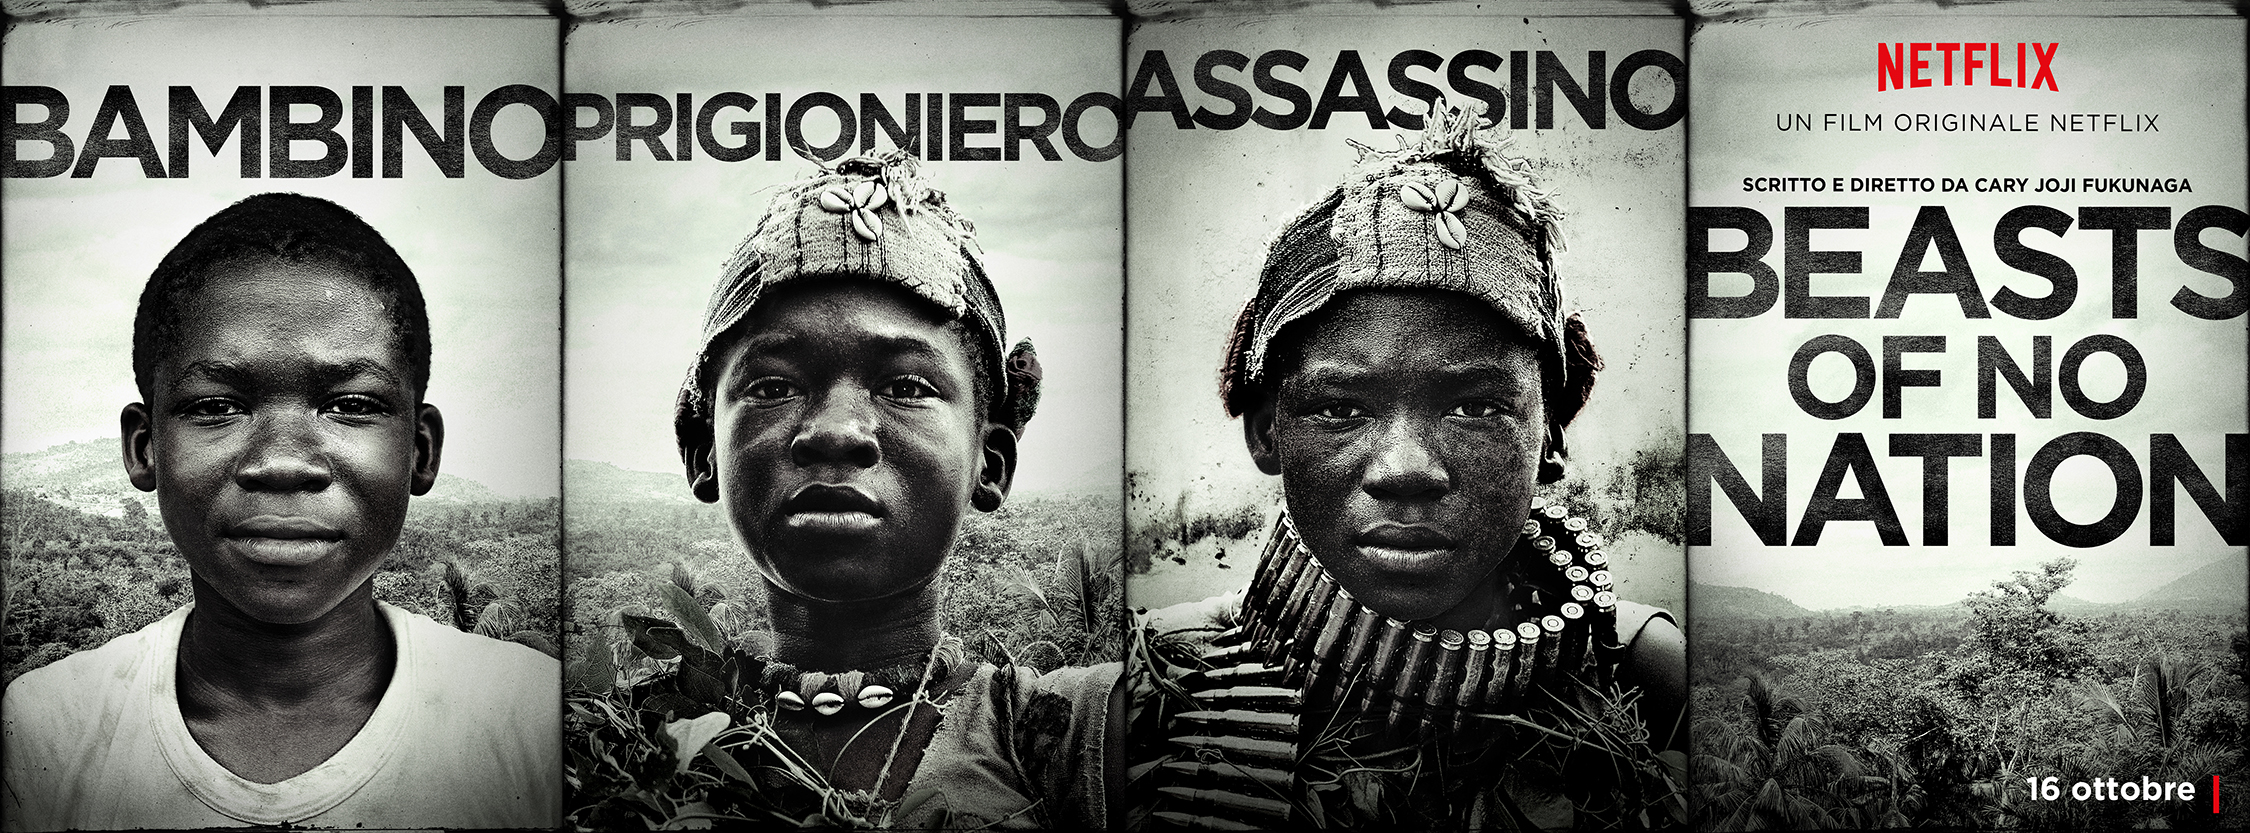 Beasts of No Nation: il character poster di Abraham Attah